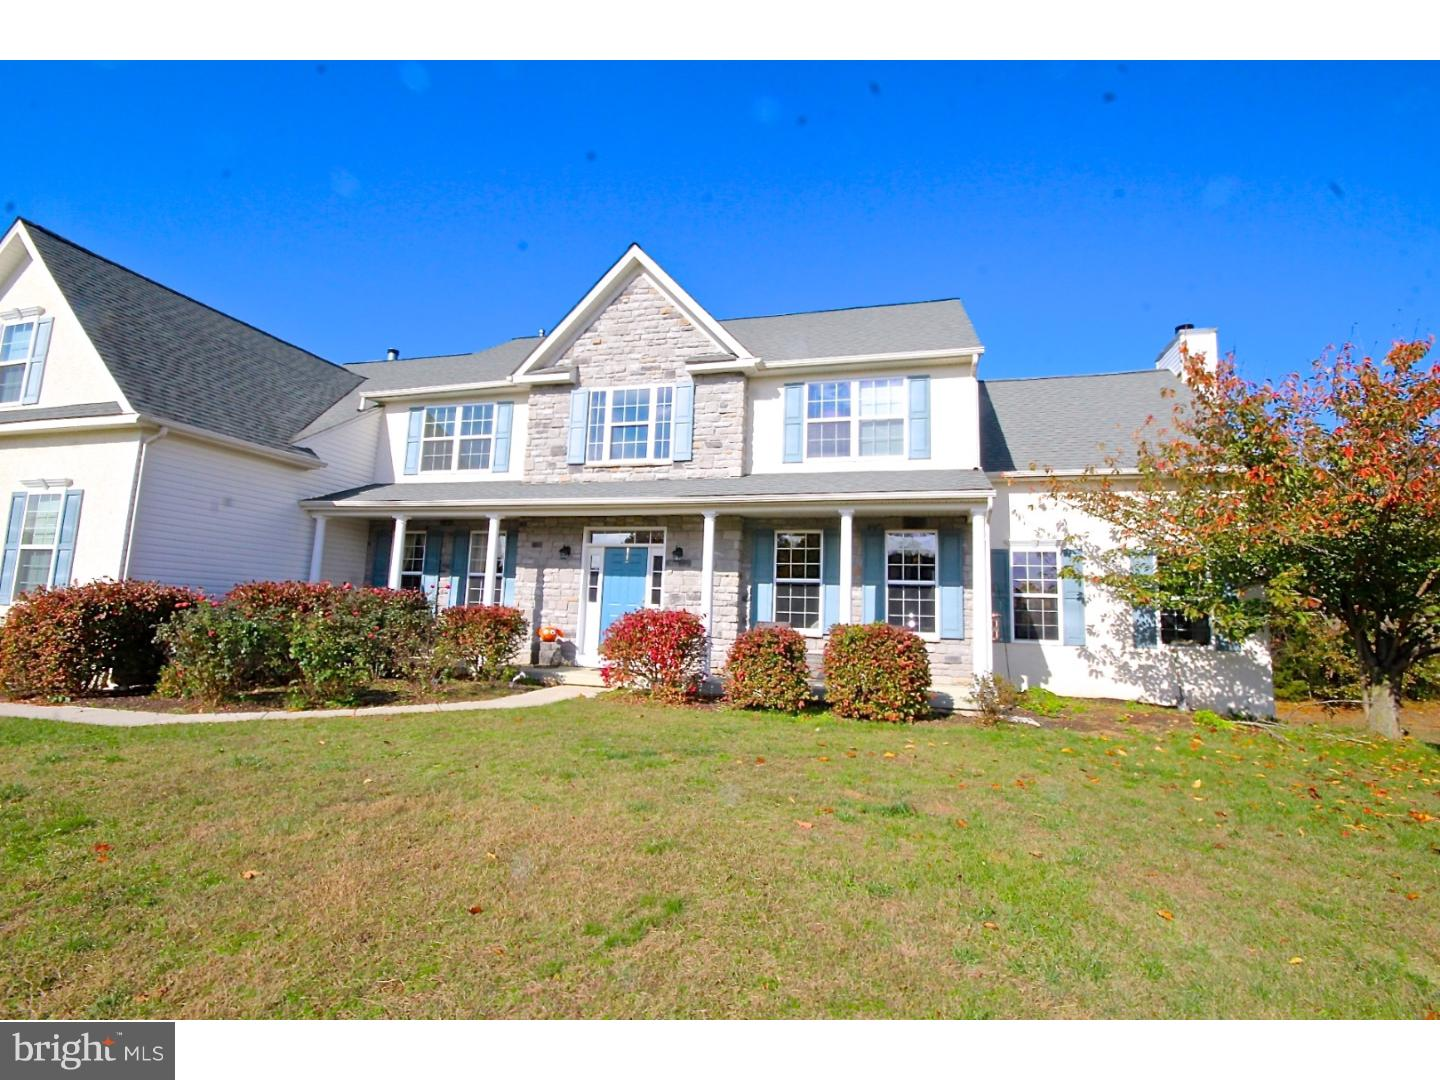 Single Family Home for Sale at 245 JENNINGS WAY Mickleton, New Jersey 08056 United States